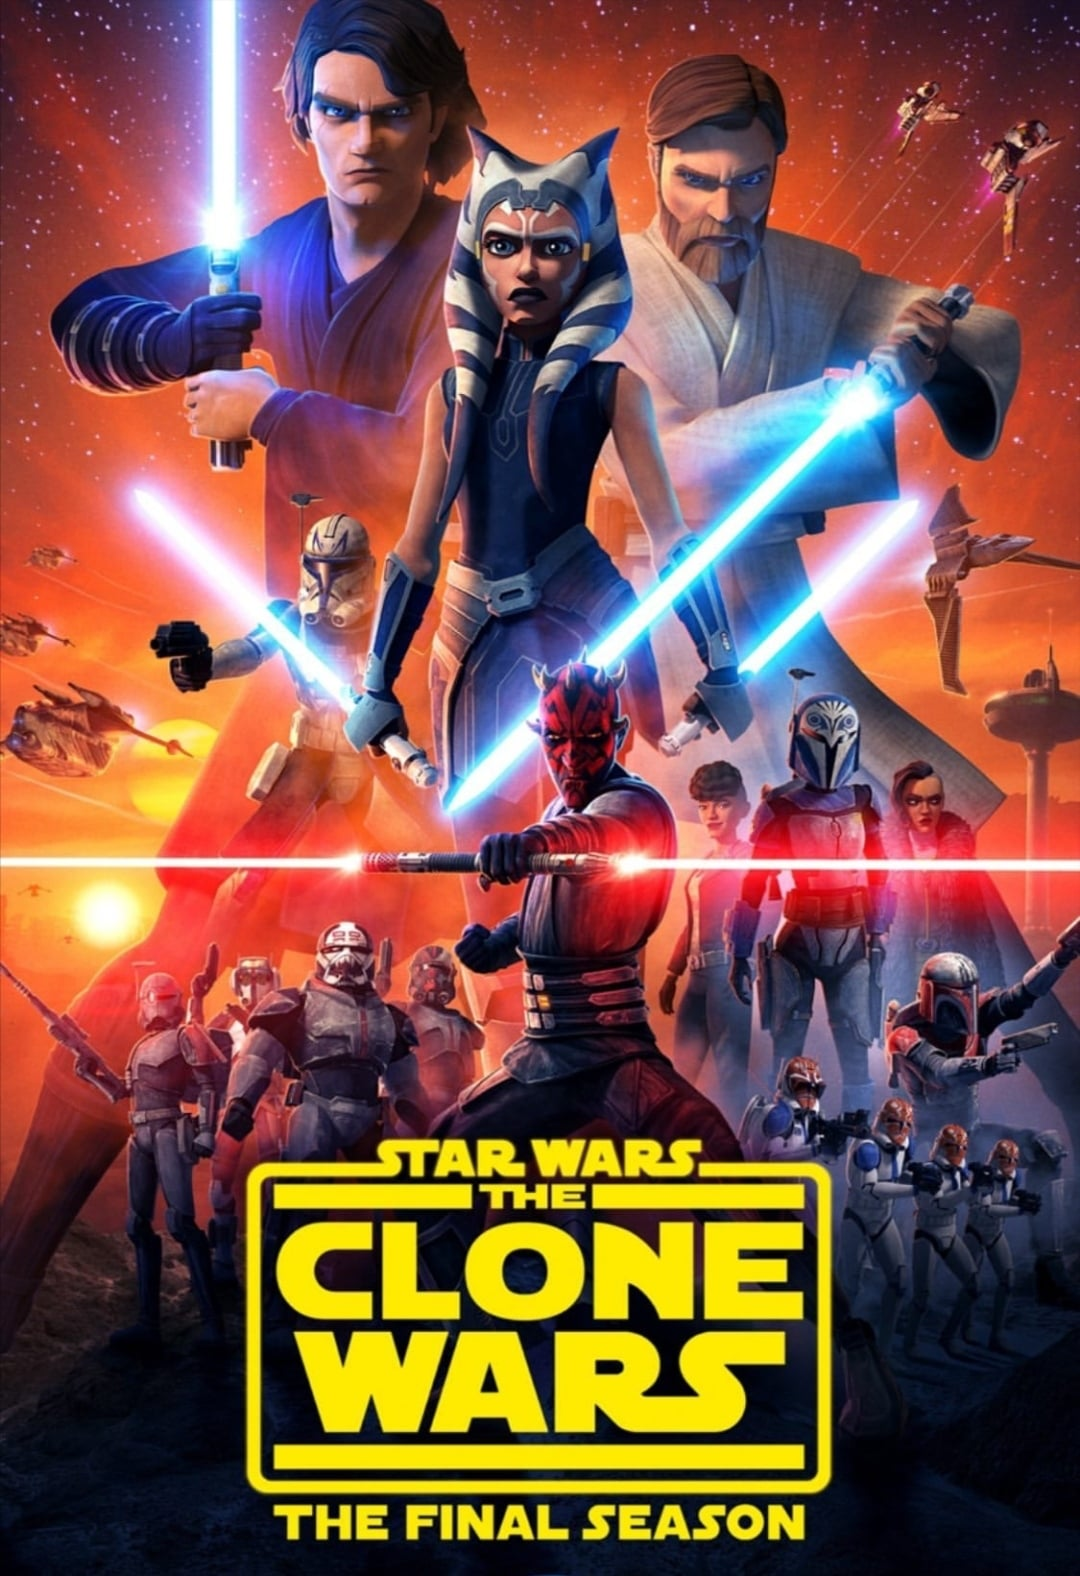 star wars the clone wars - the siege of mandalore (2020)